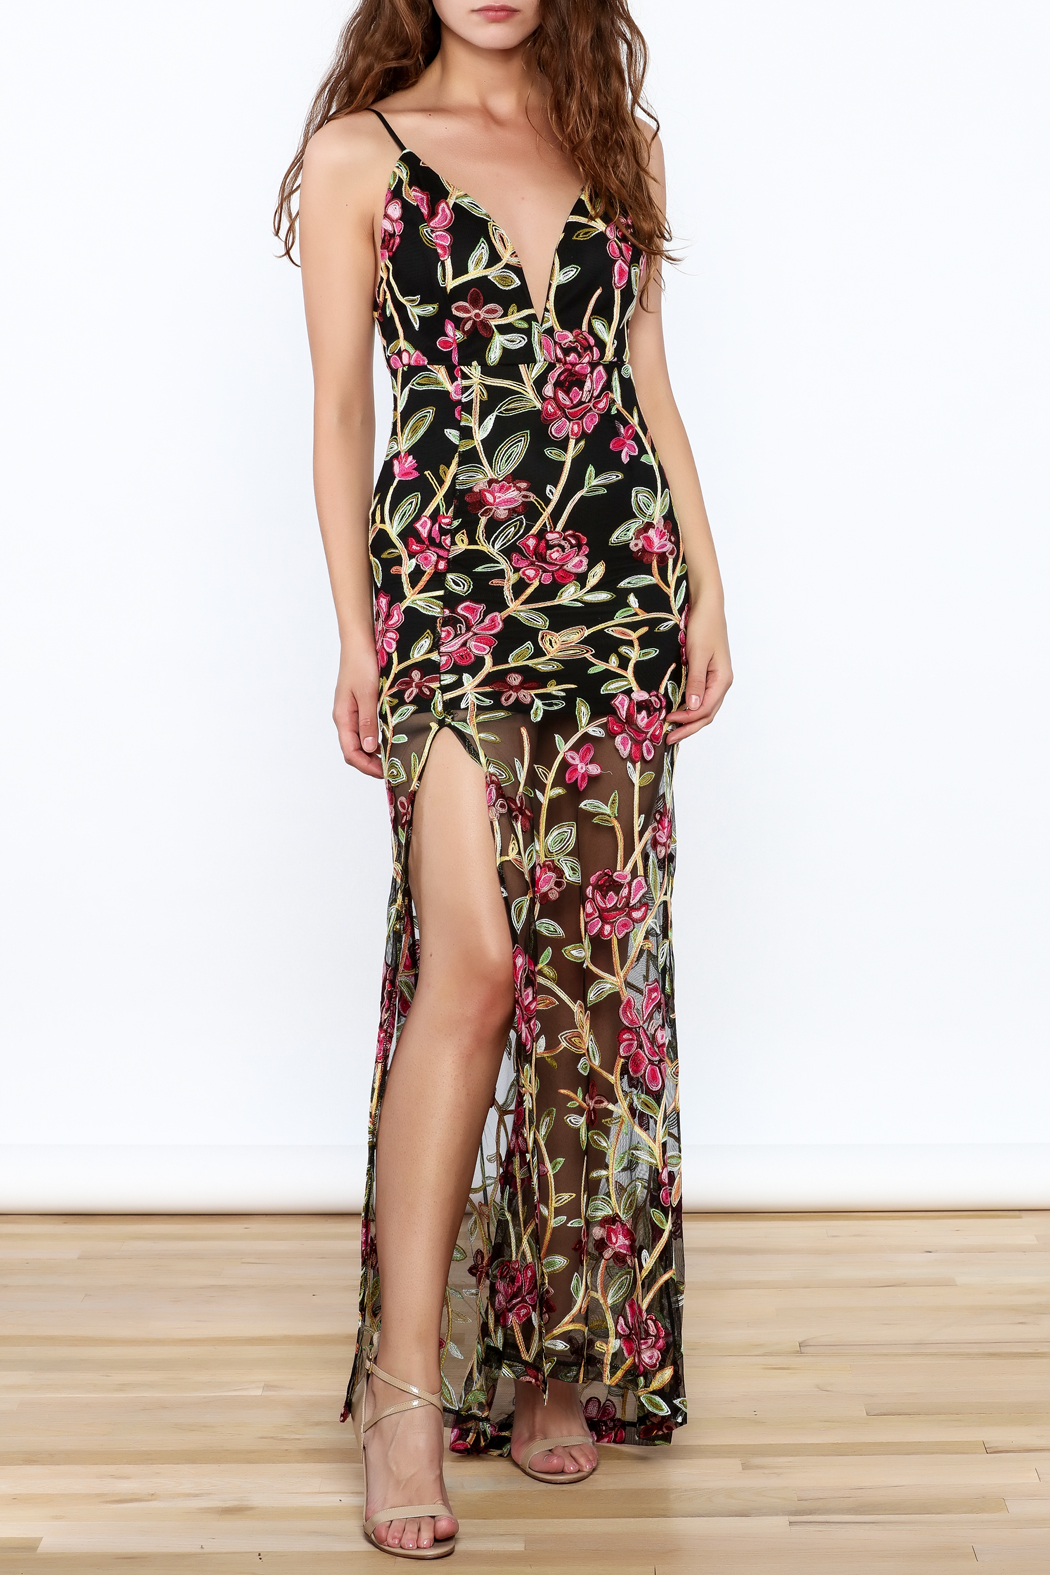 luxxel Embroidered Lace Maxi Dress - Main Image